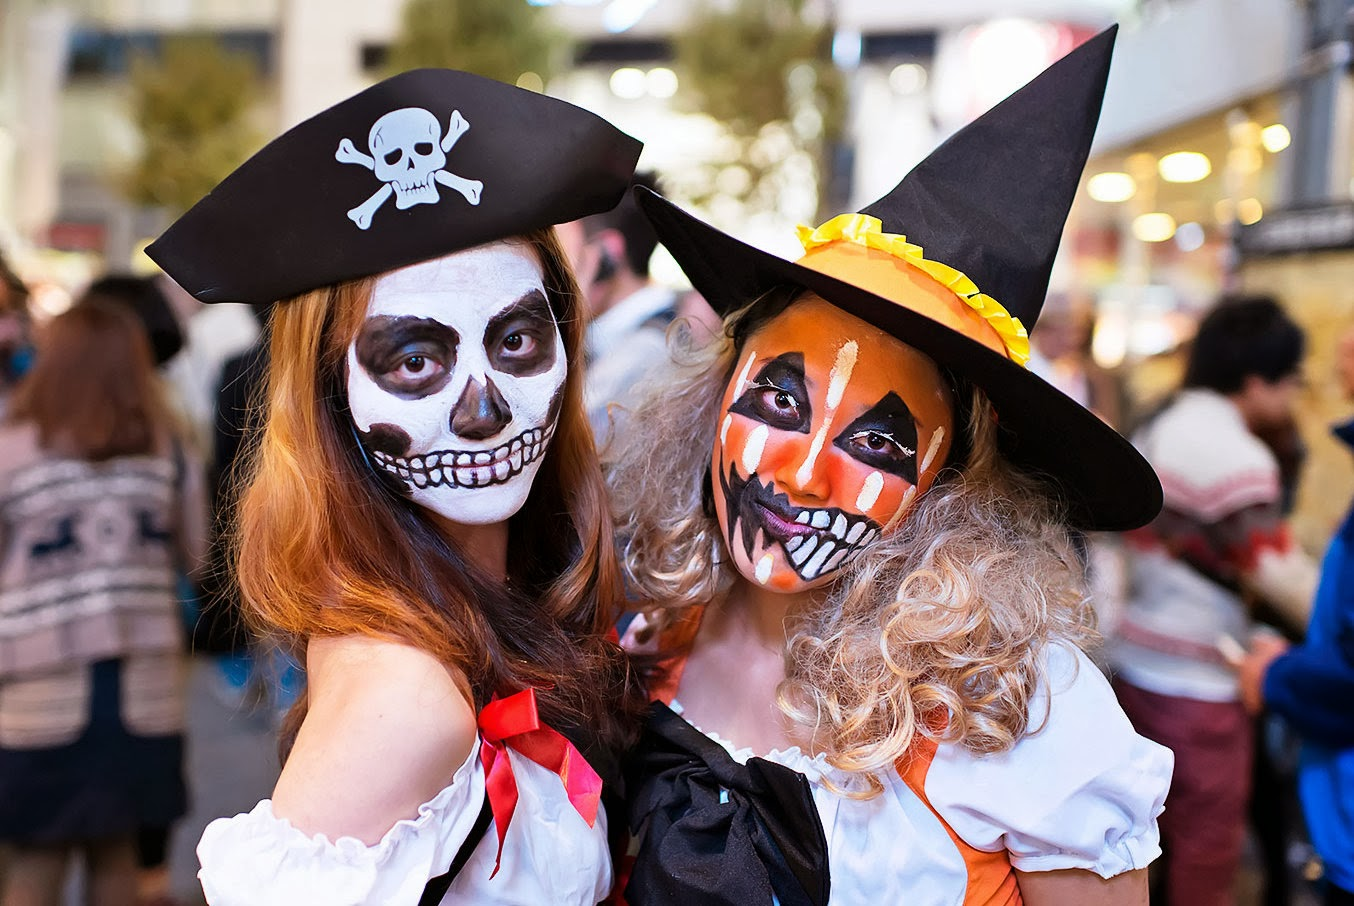 6 fun facts you probably didnt know about halloween - What Is Halloween A Celebration Of